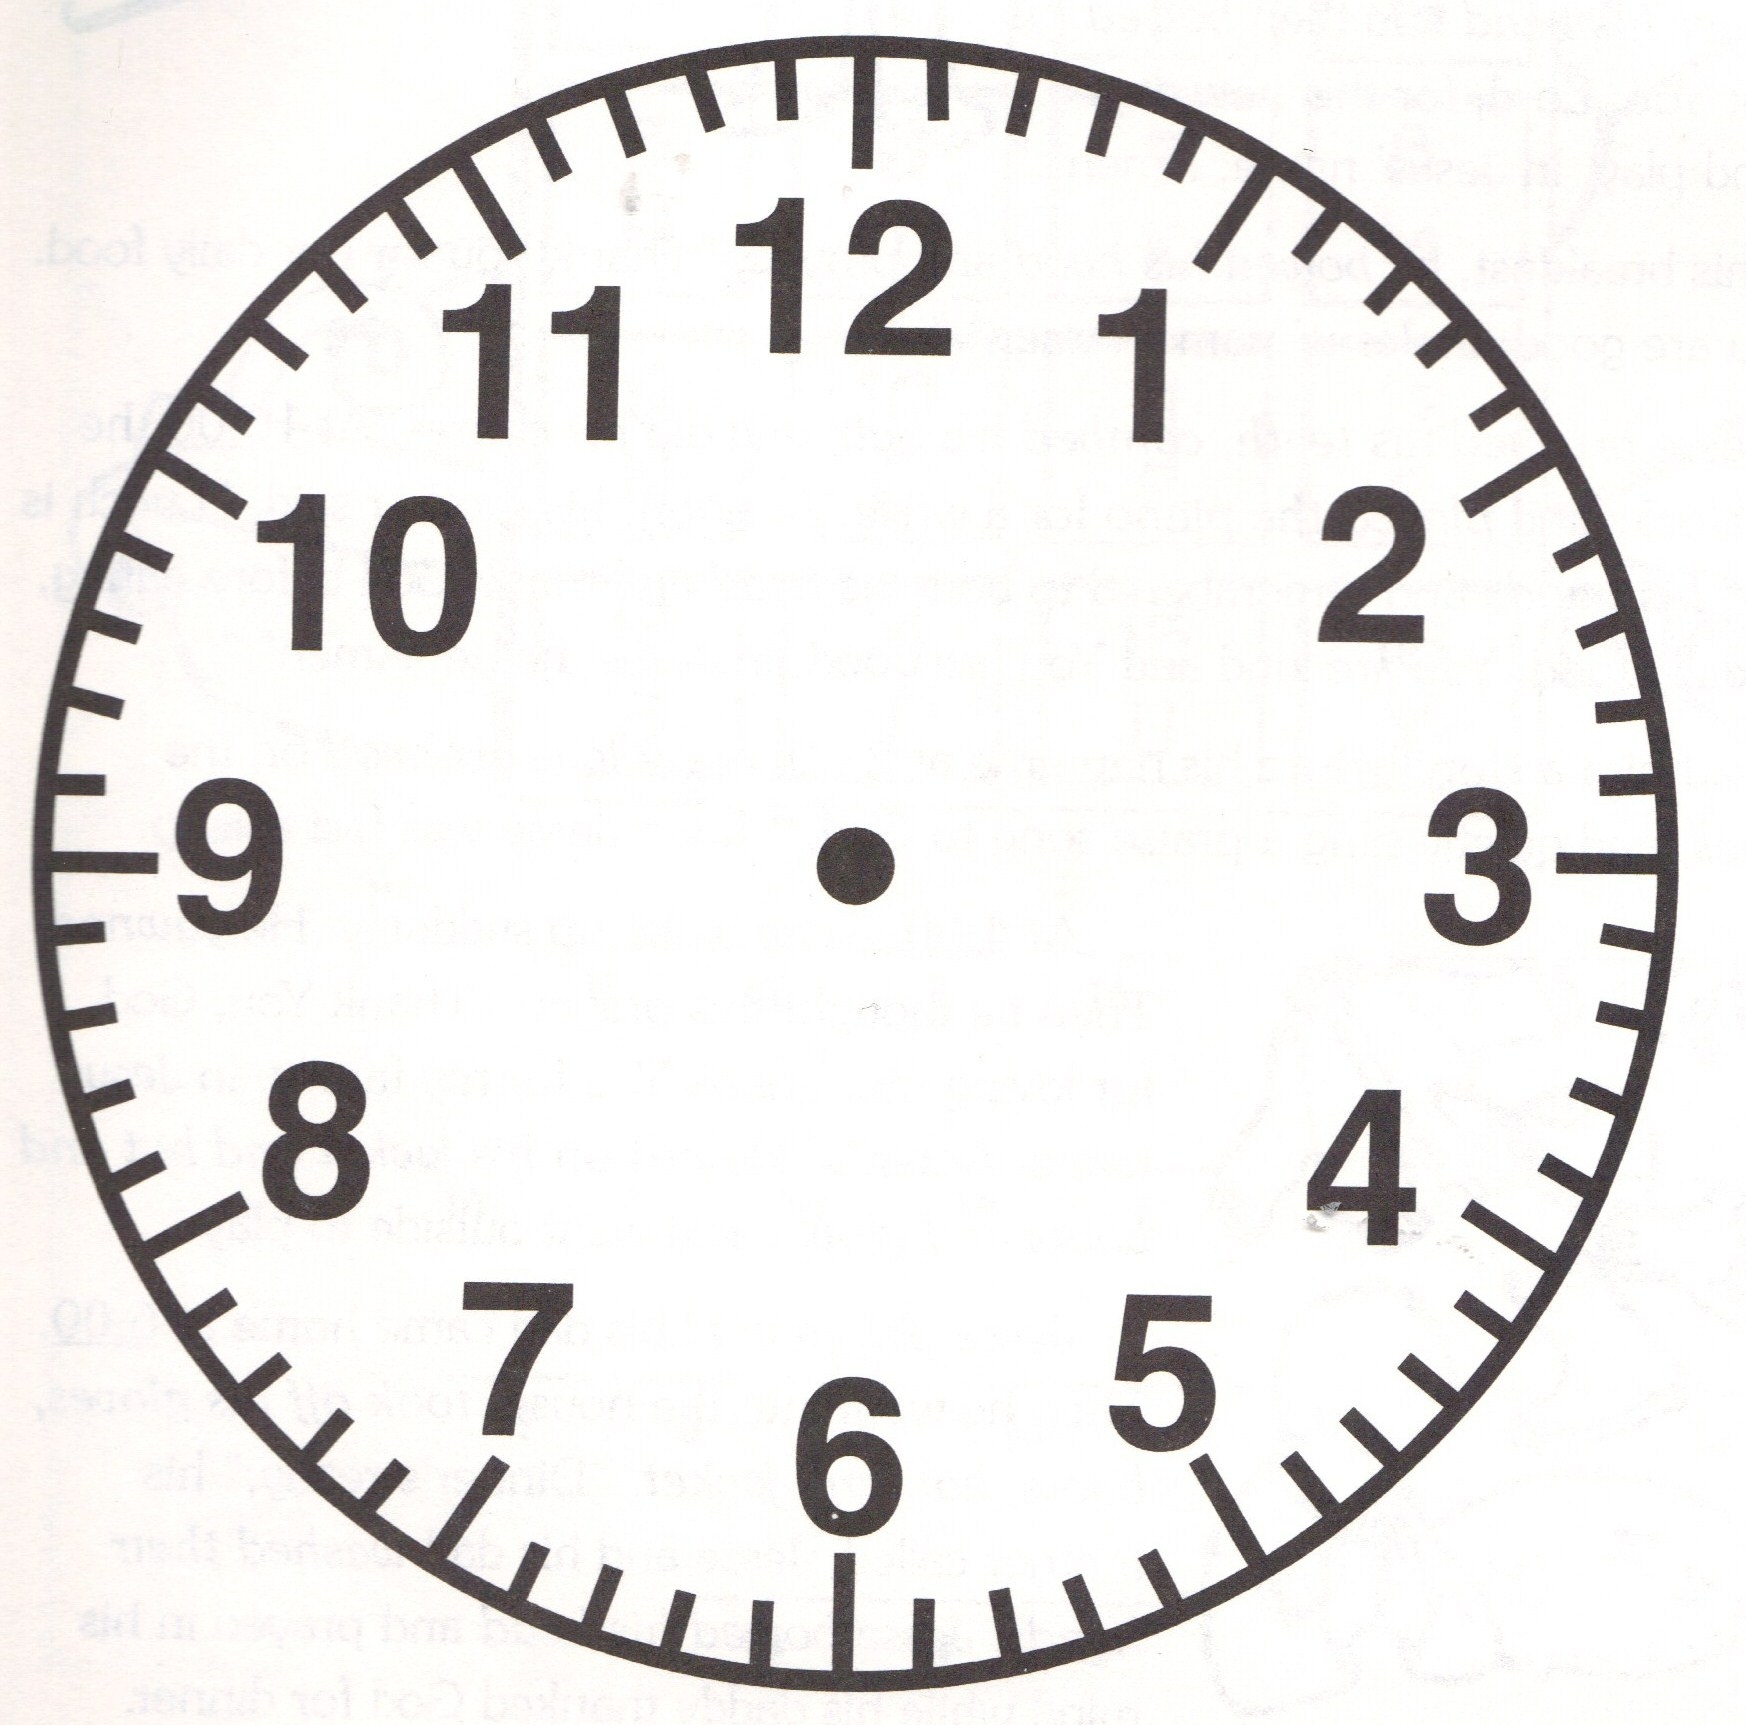 Printable Clock Face Without Hands Clipart Best With